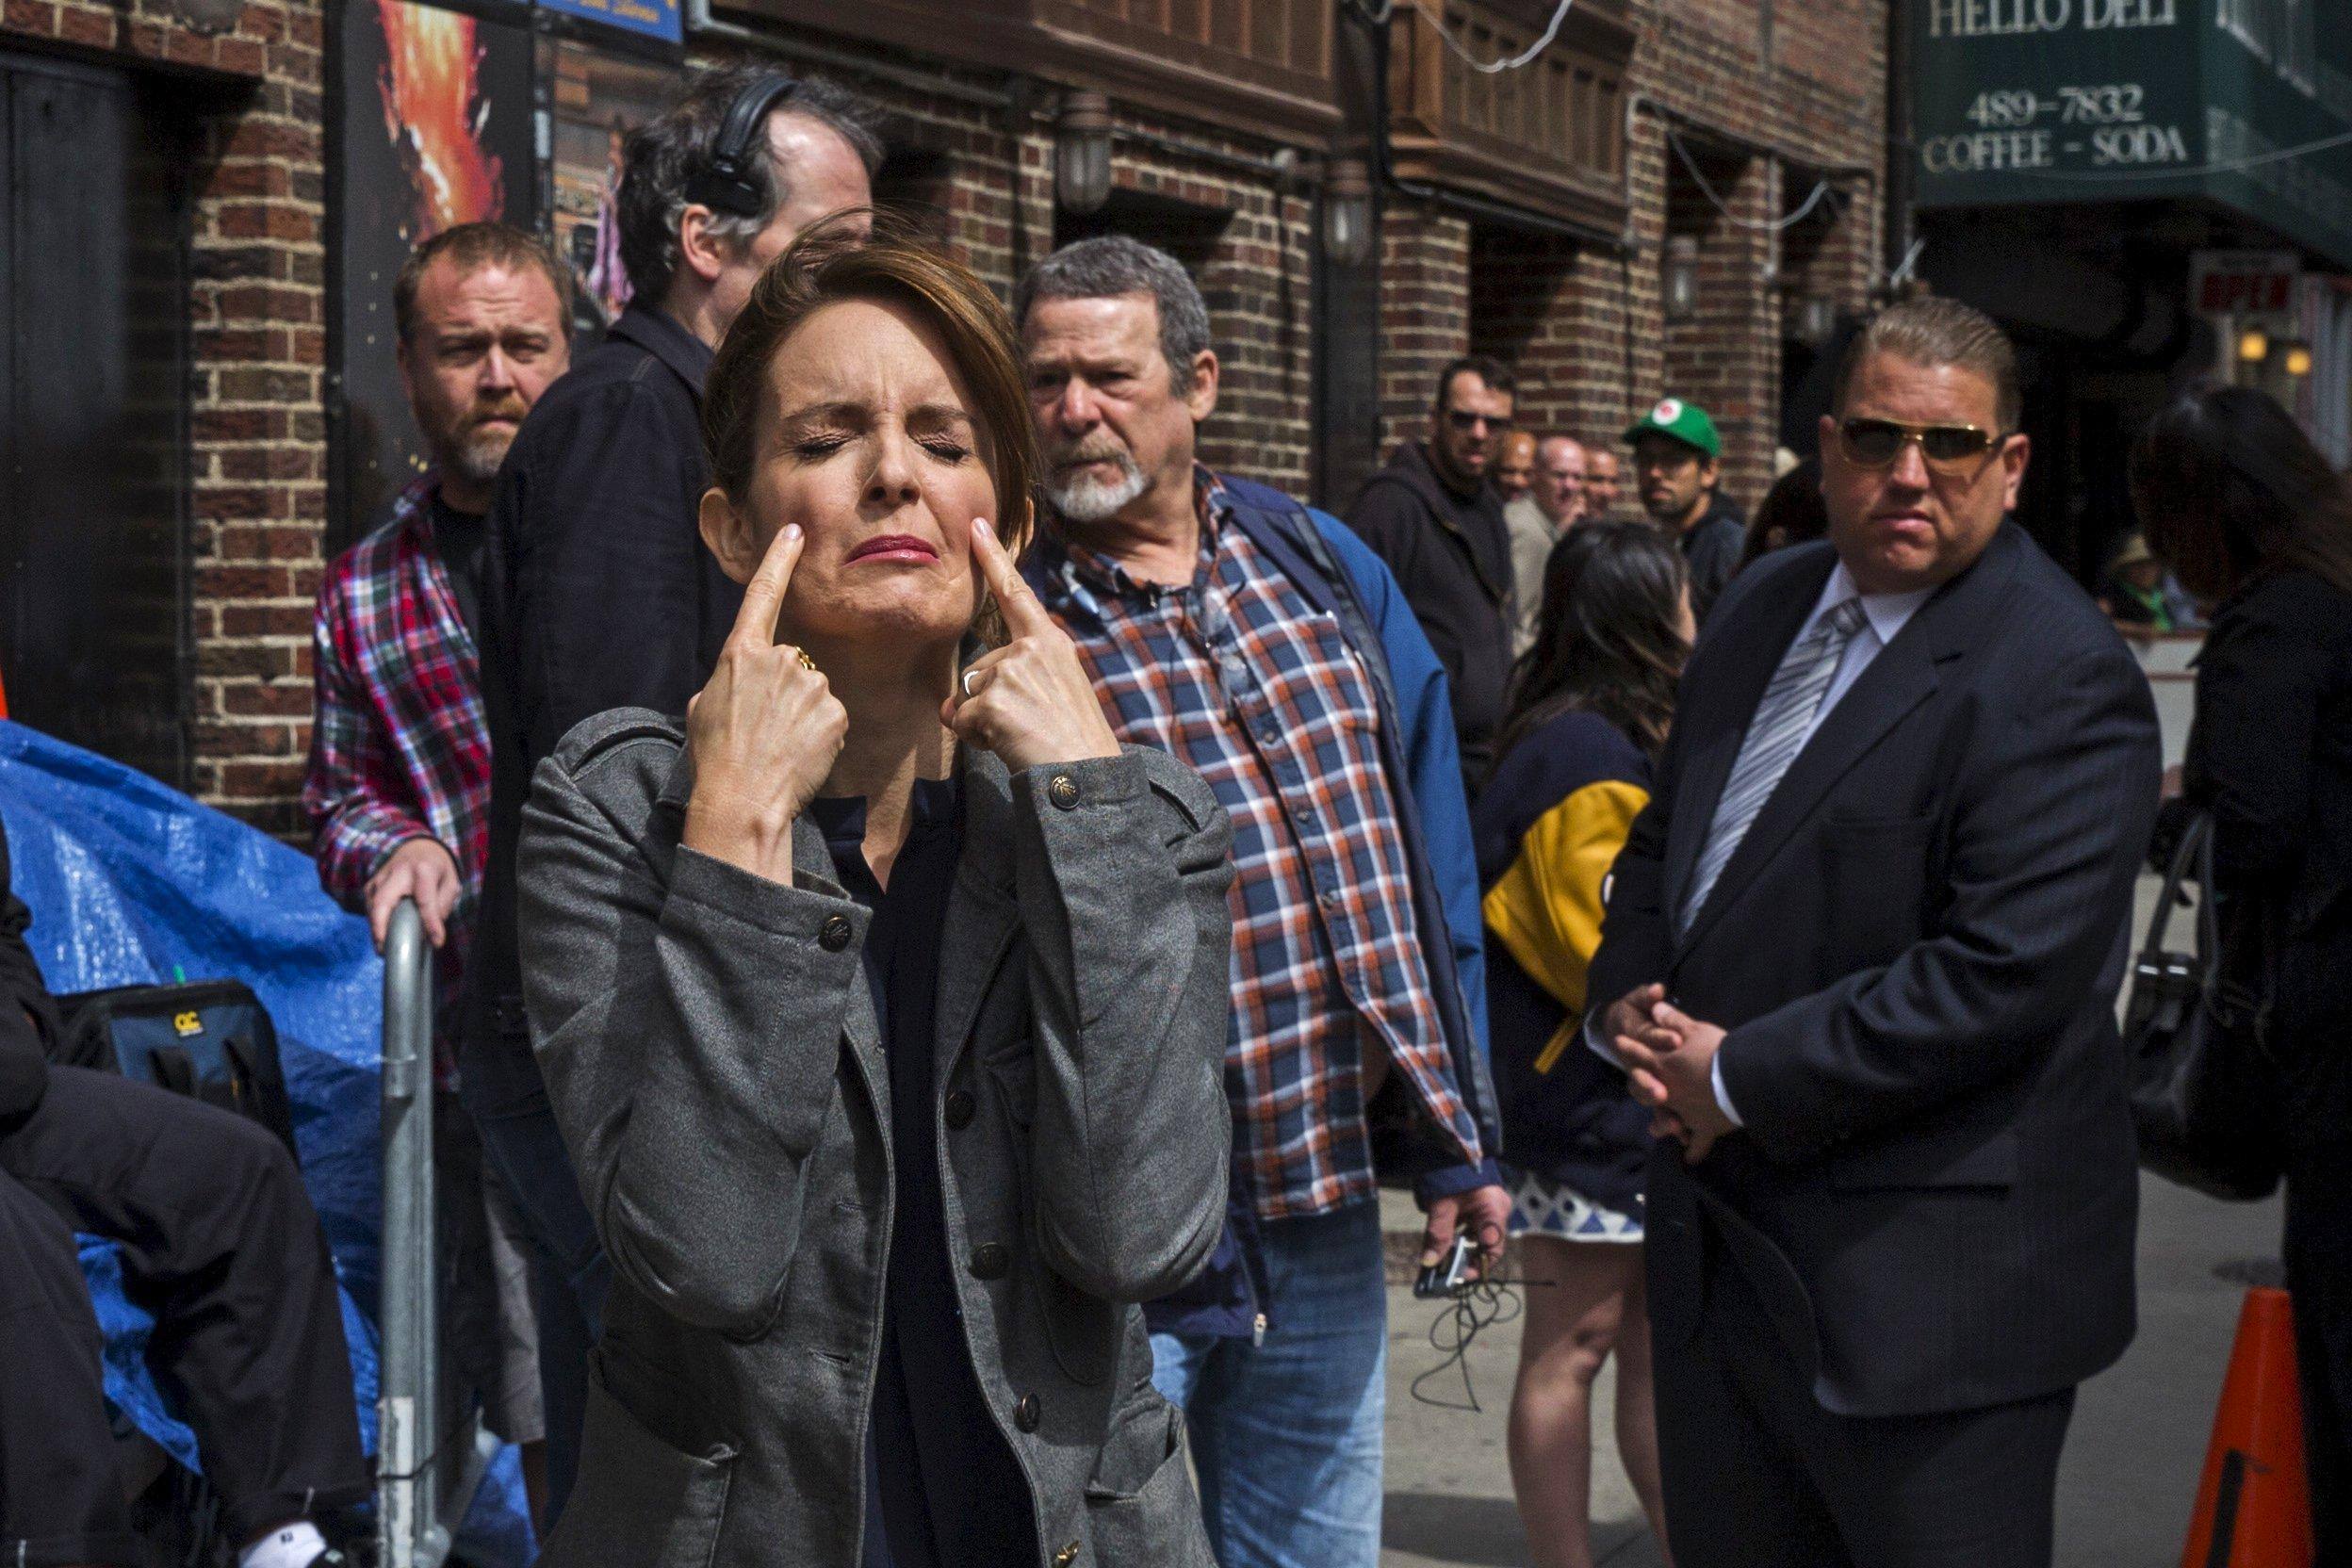 """Comedian Tina Fey pretends to cry as she arrives at Ed Sullivan Theater in Manhattan as David Letterman prepares for the taping of tonight's final edition of """"The Late Show"""" in New York May 20, 2015. REUTERS/Lucas Jackson"""